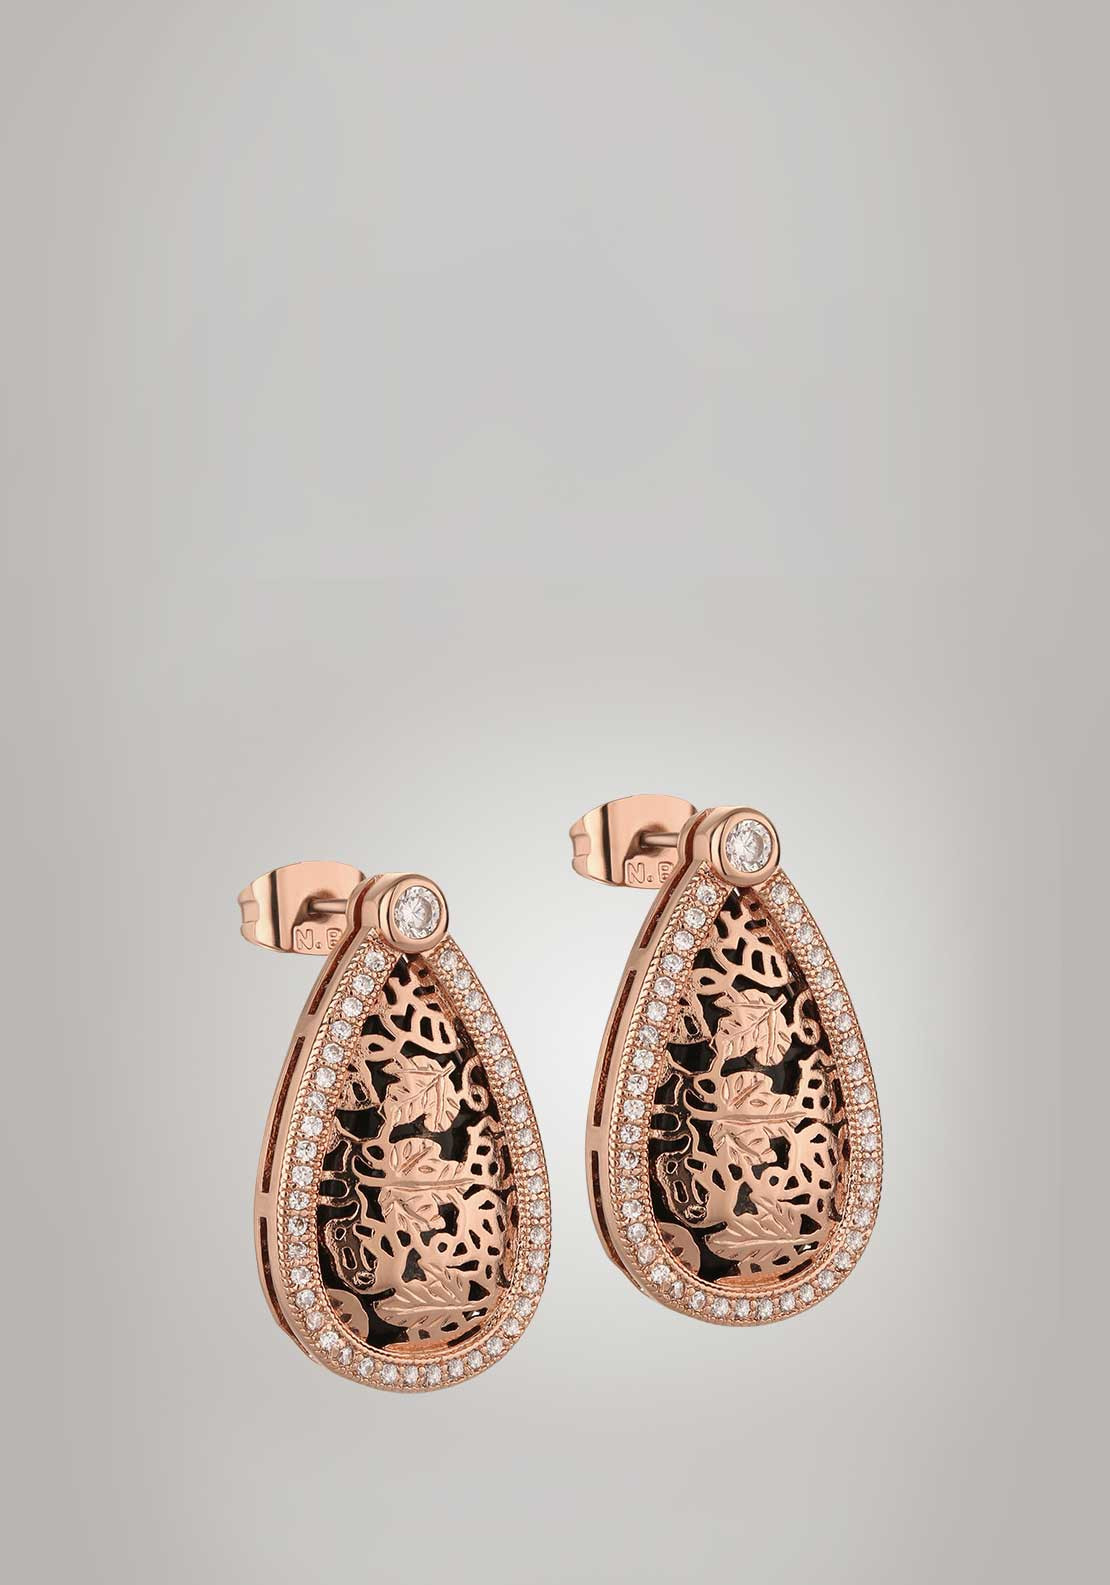 Newbridge Silverware Guinness Black Hops Earrings, Rose Gold